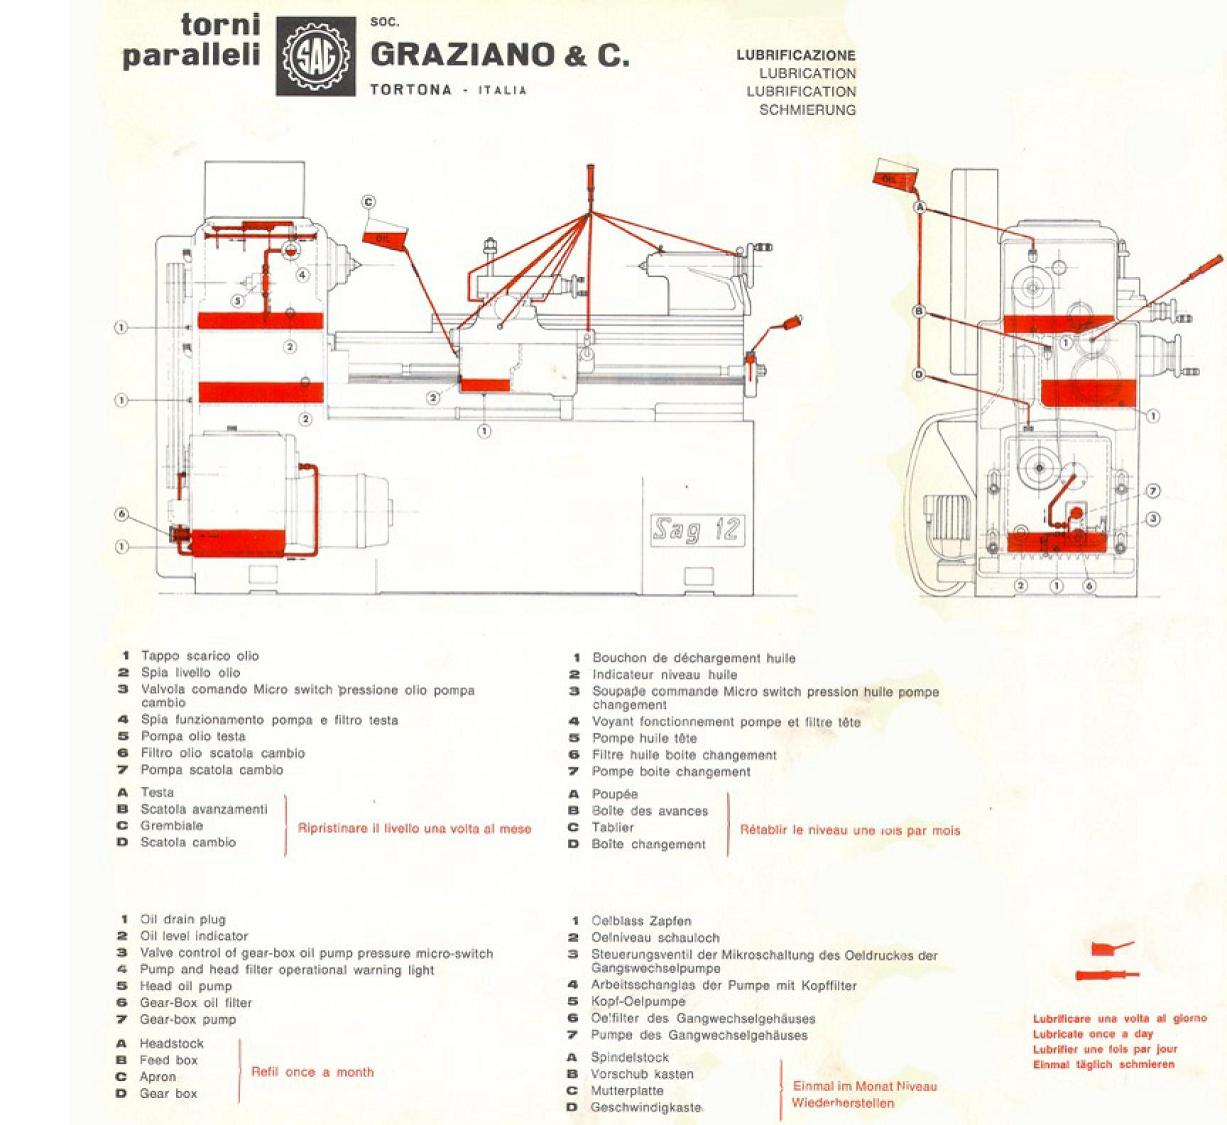 uw41610 graziano sag 12 & 12s graziano sag 12 wiring diagram at n-0.co